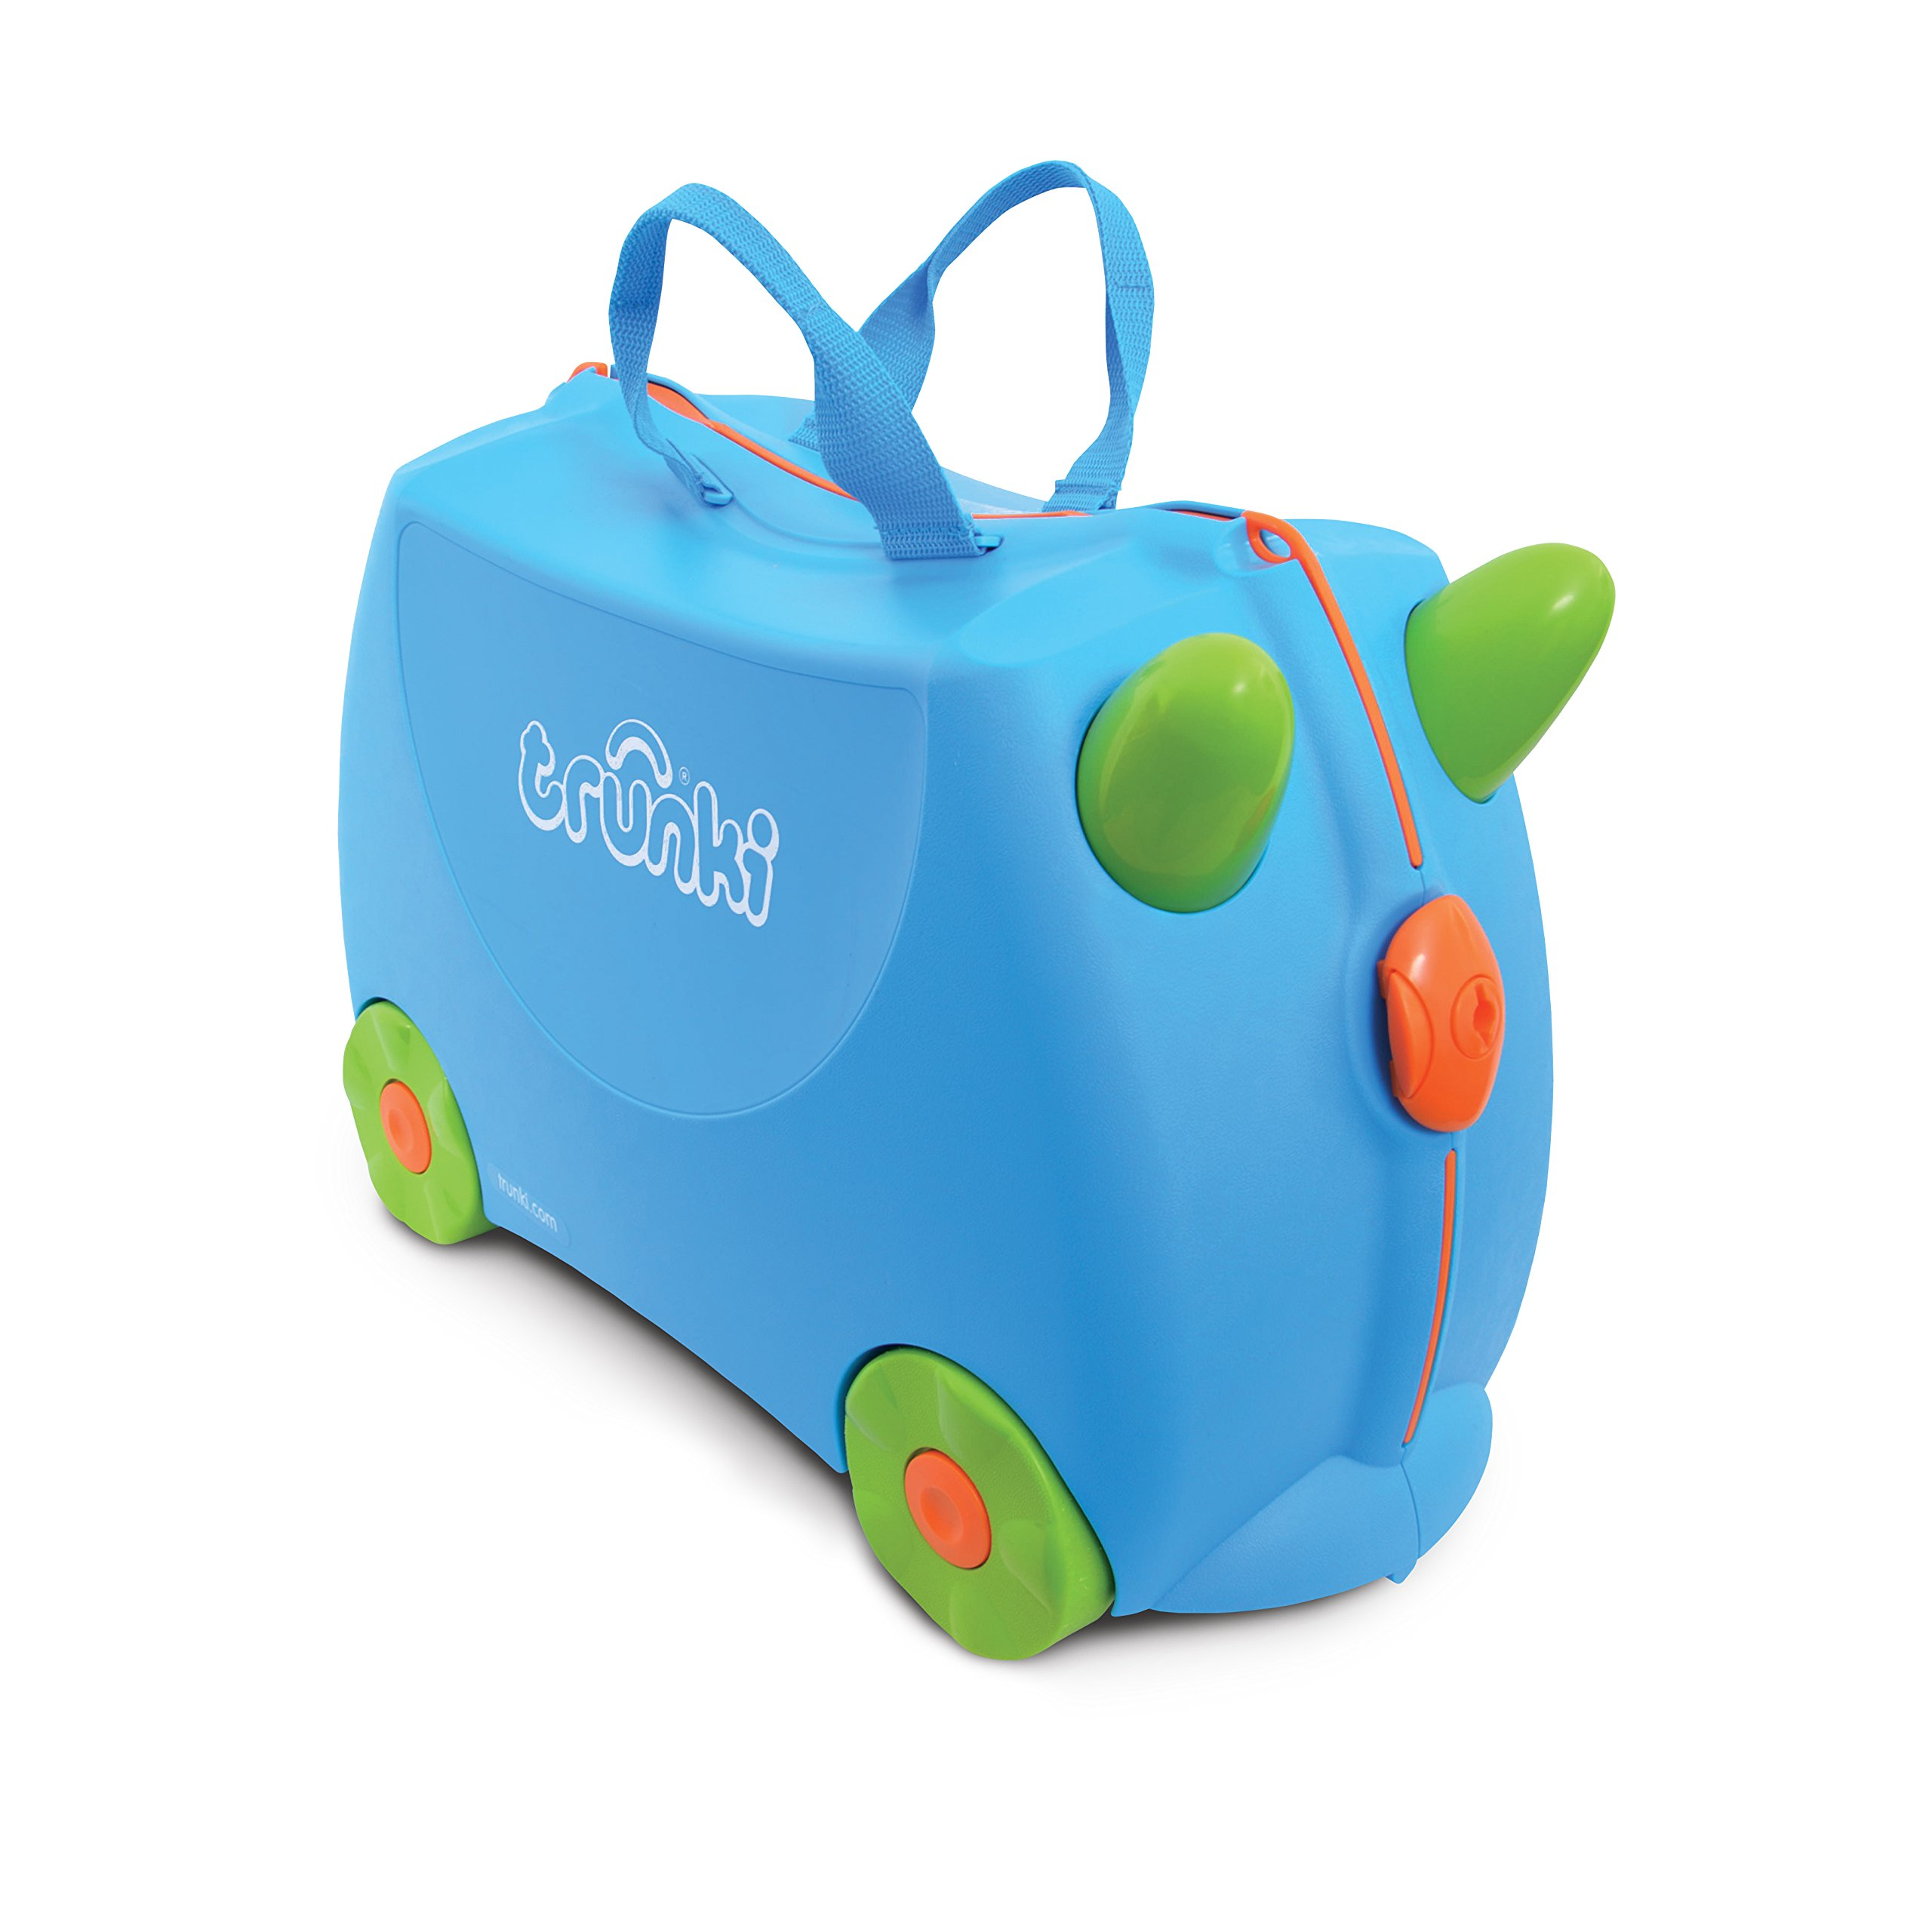 Trunki Original Kids Ride-On Suitcase and Carry-On Luggage - Terrance (Blue) by Trunki (Image #1)